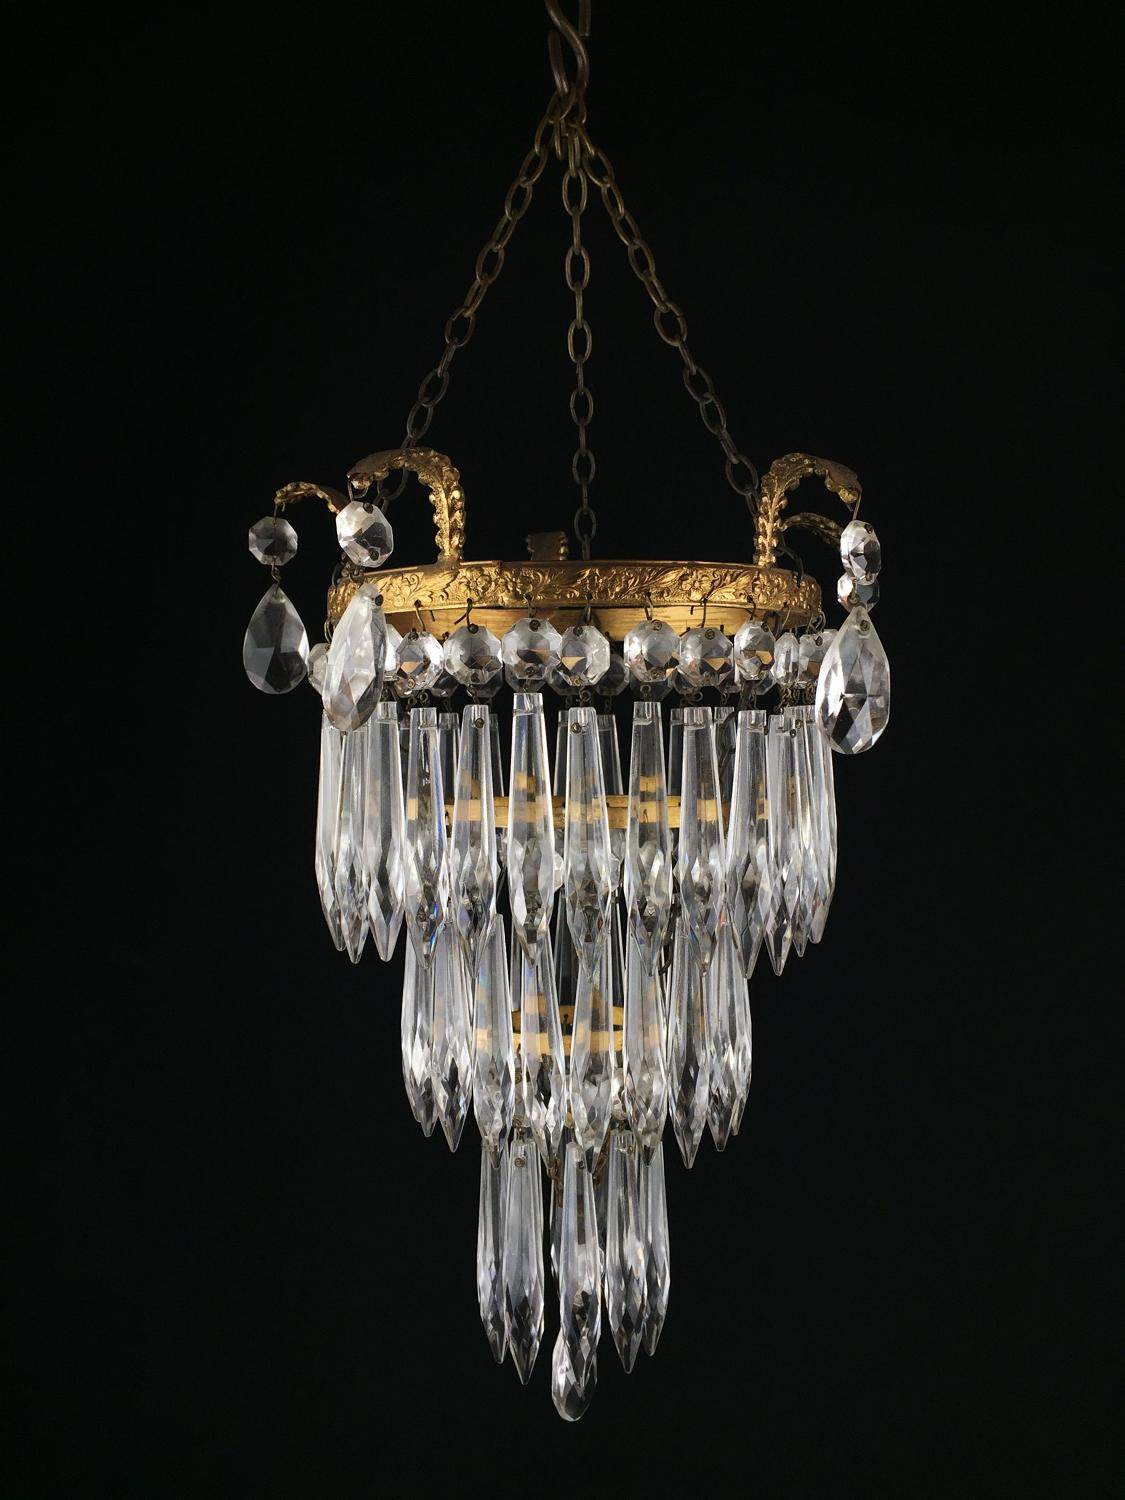 A small Edwardian style icicle light